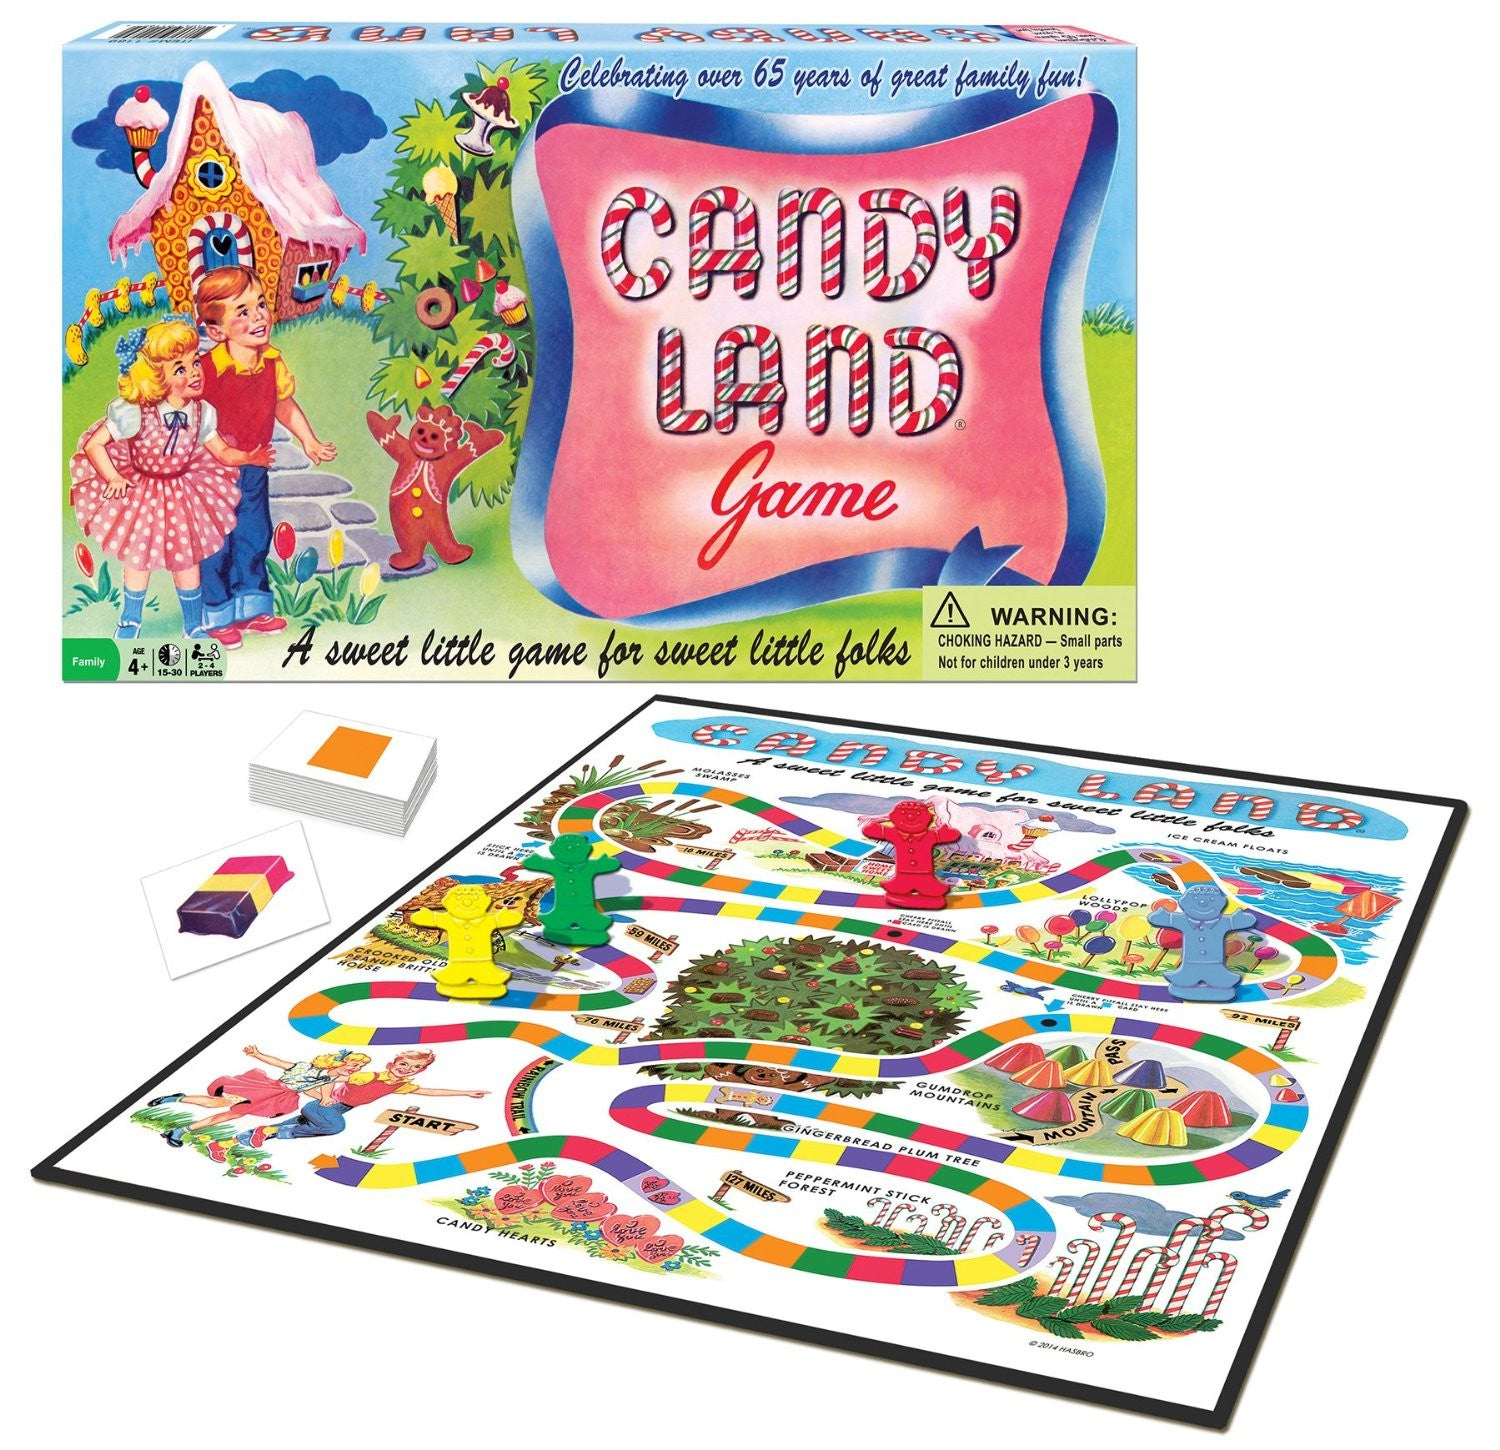 Candyland Classic 65th Anniversary edition